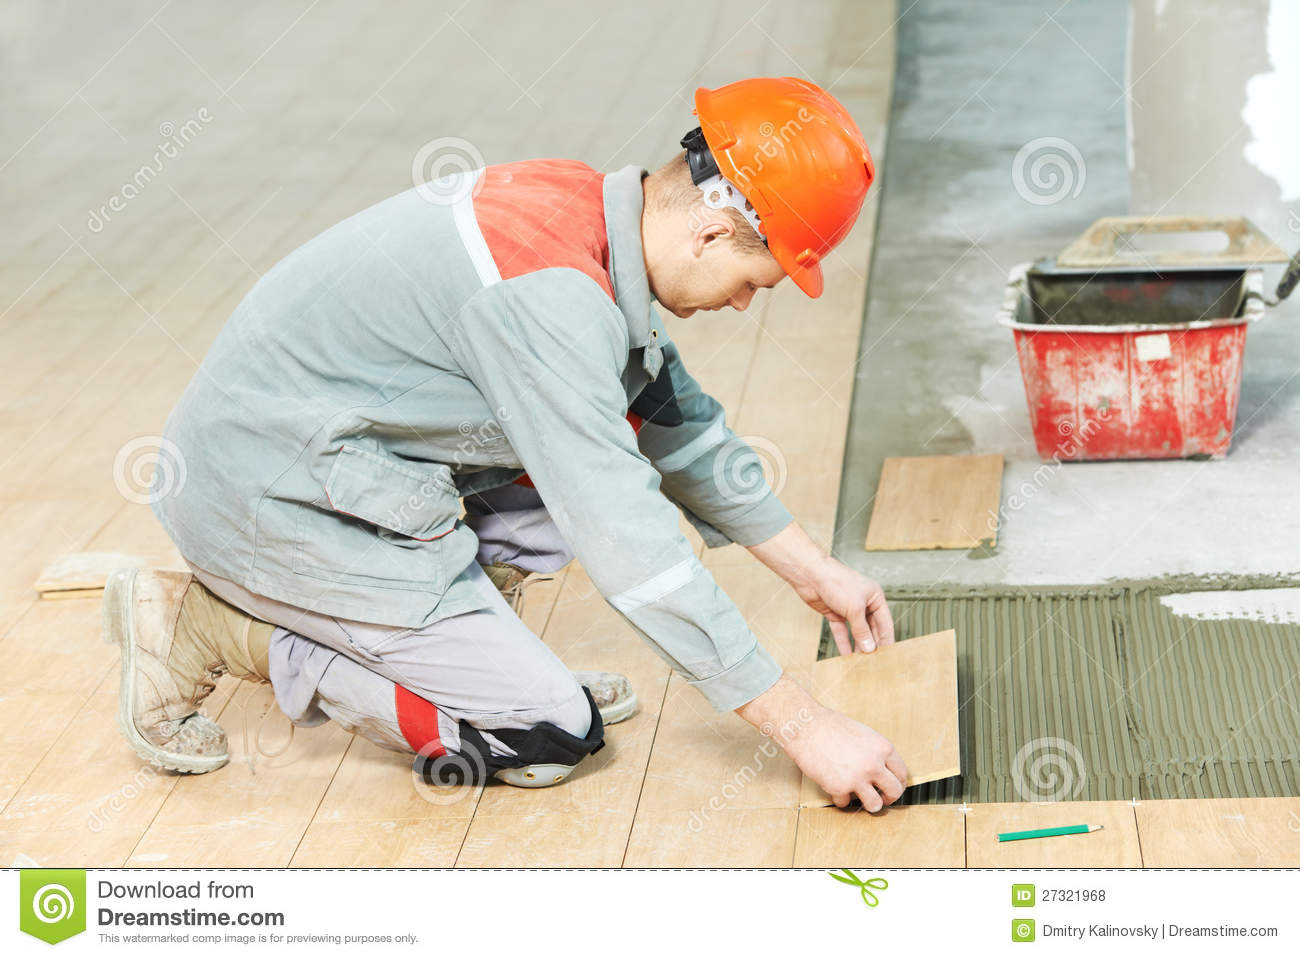 Peinture Renovation Carrelage Of Tiler At Industrial Floor Tiling Renovation Work Stock